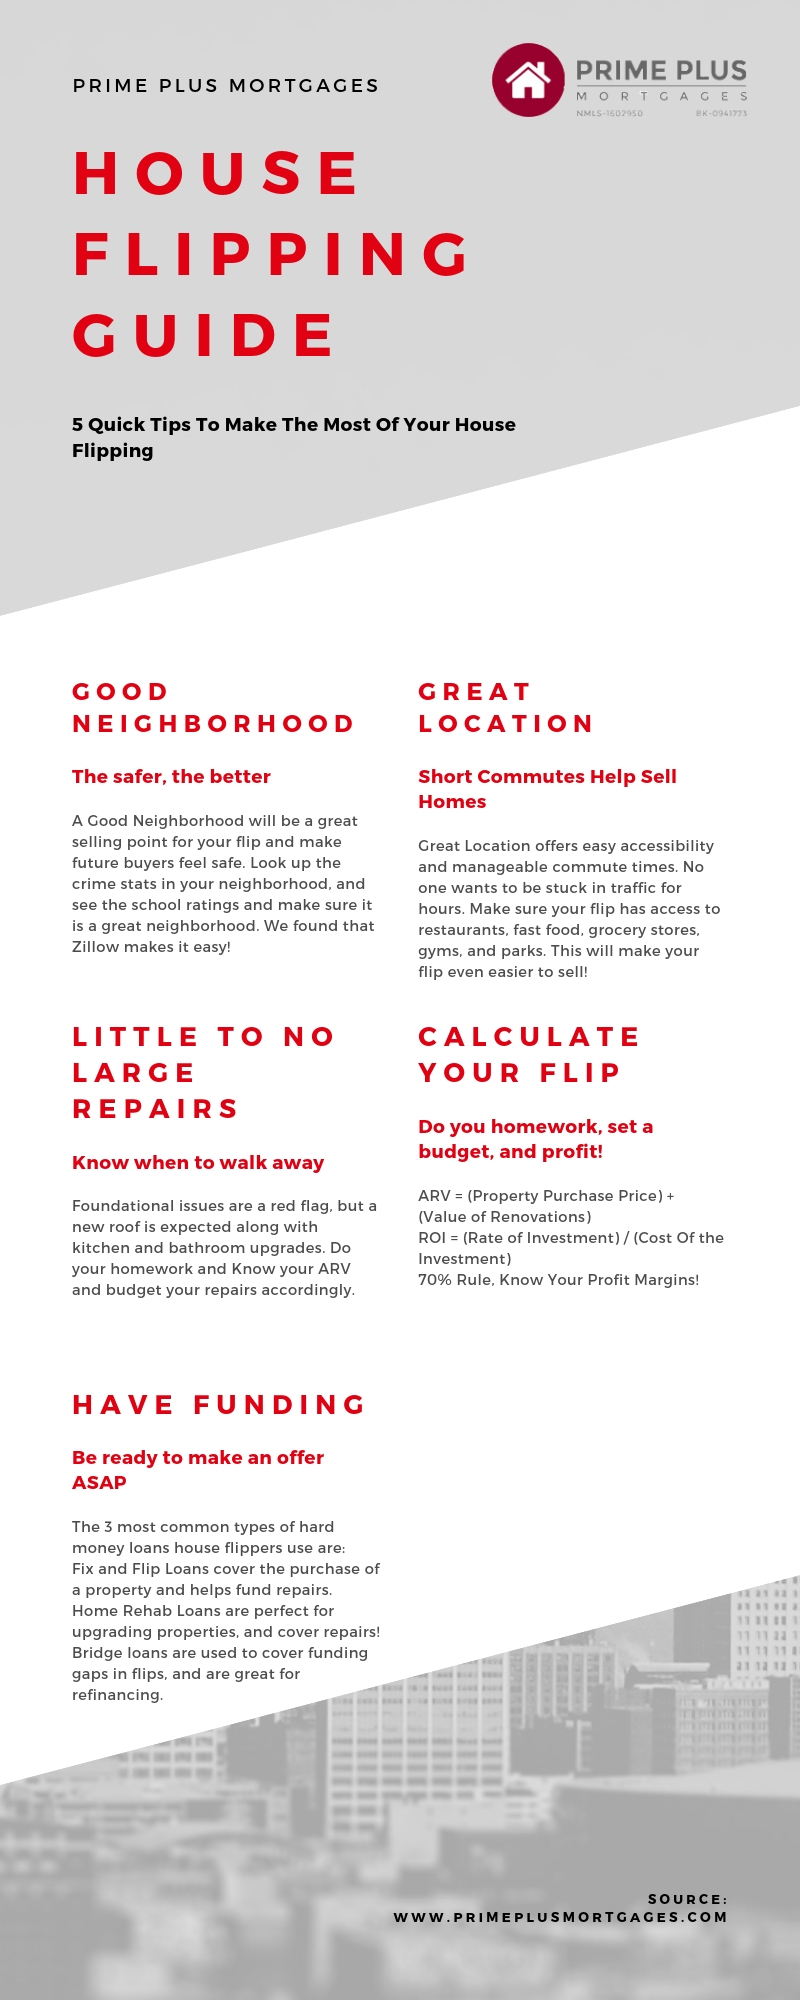 Infographic for house flipping tips